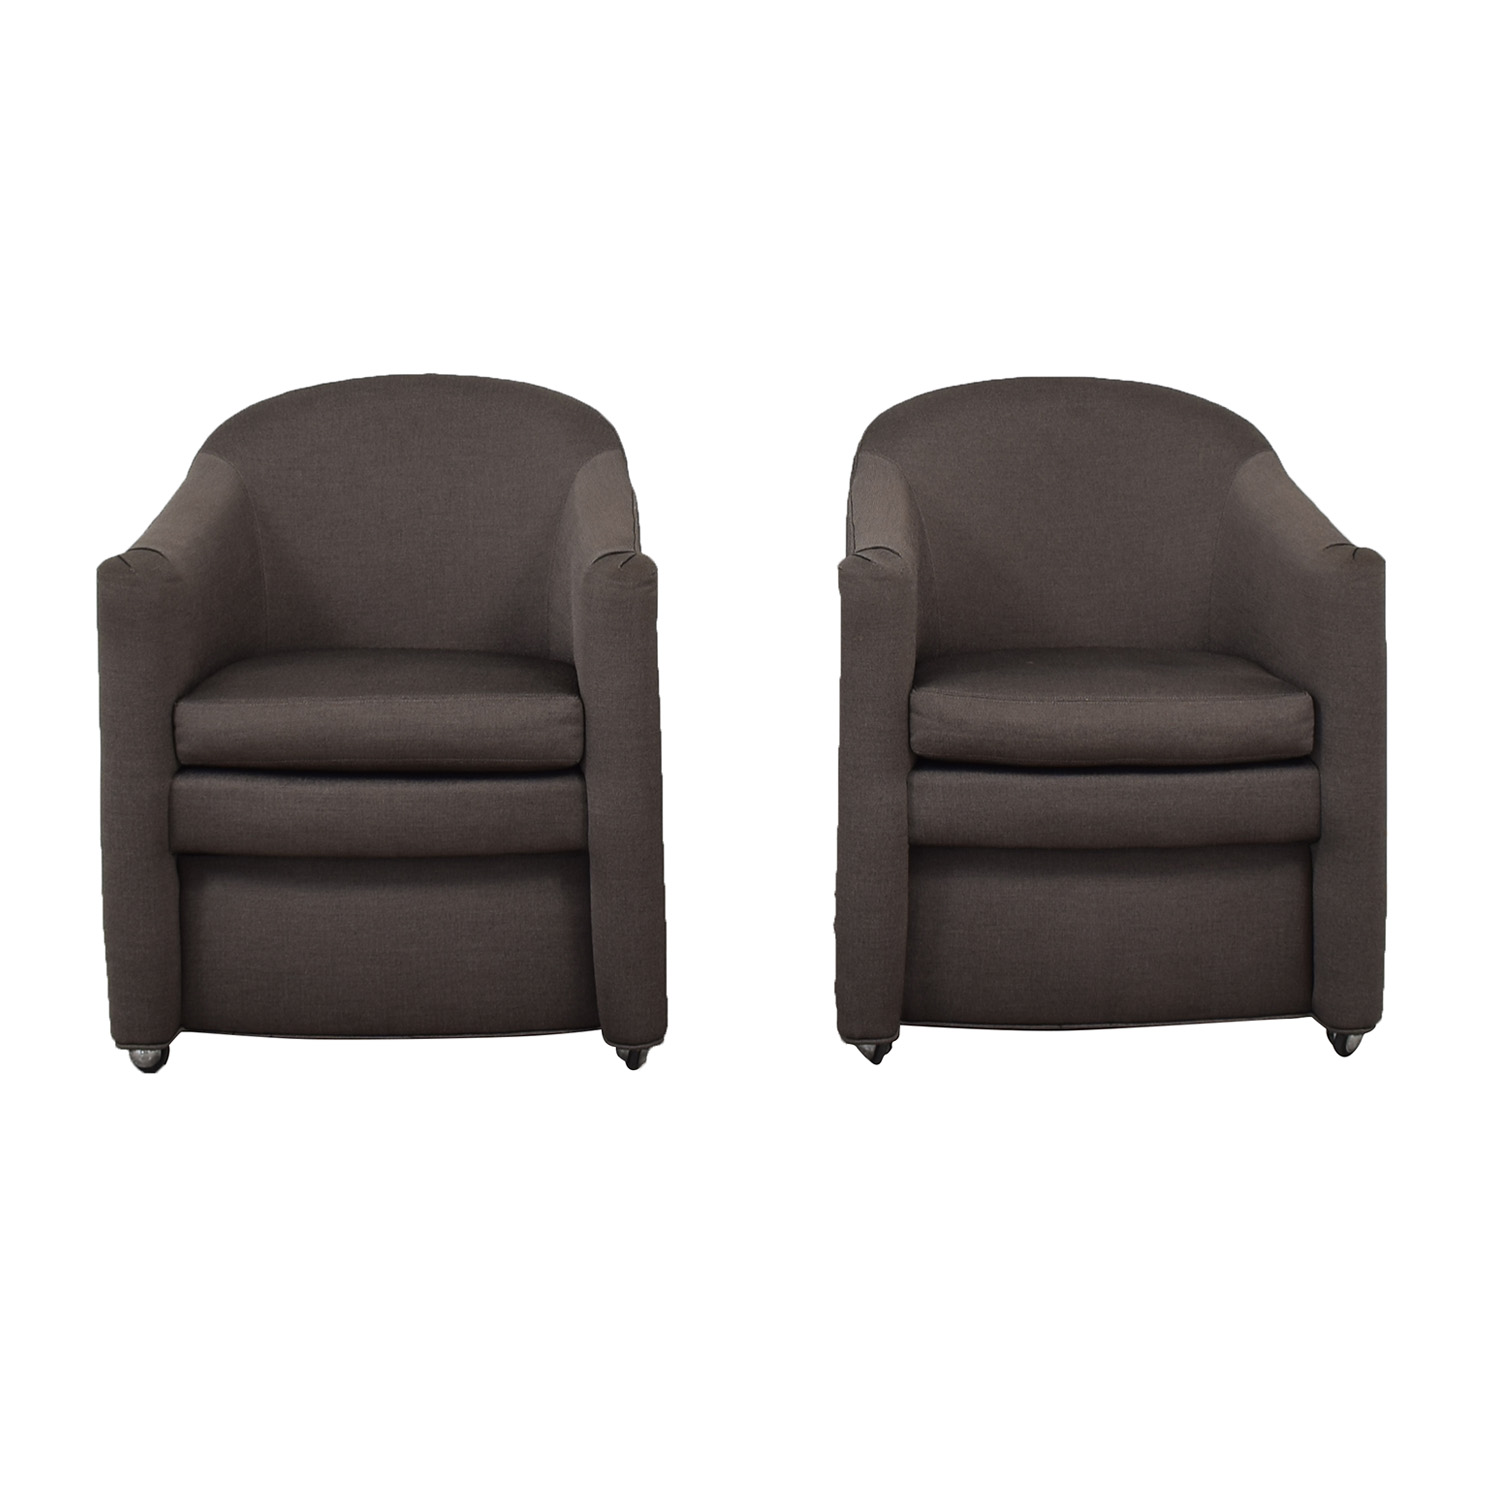 Kravet Kravet Grey Wianno Accent Chairs on sale